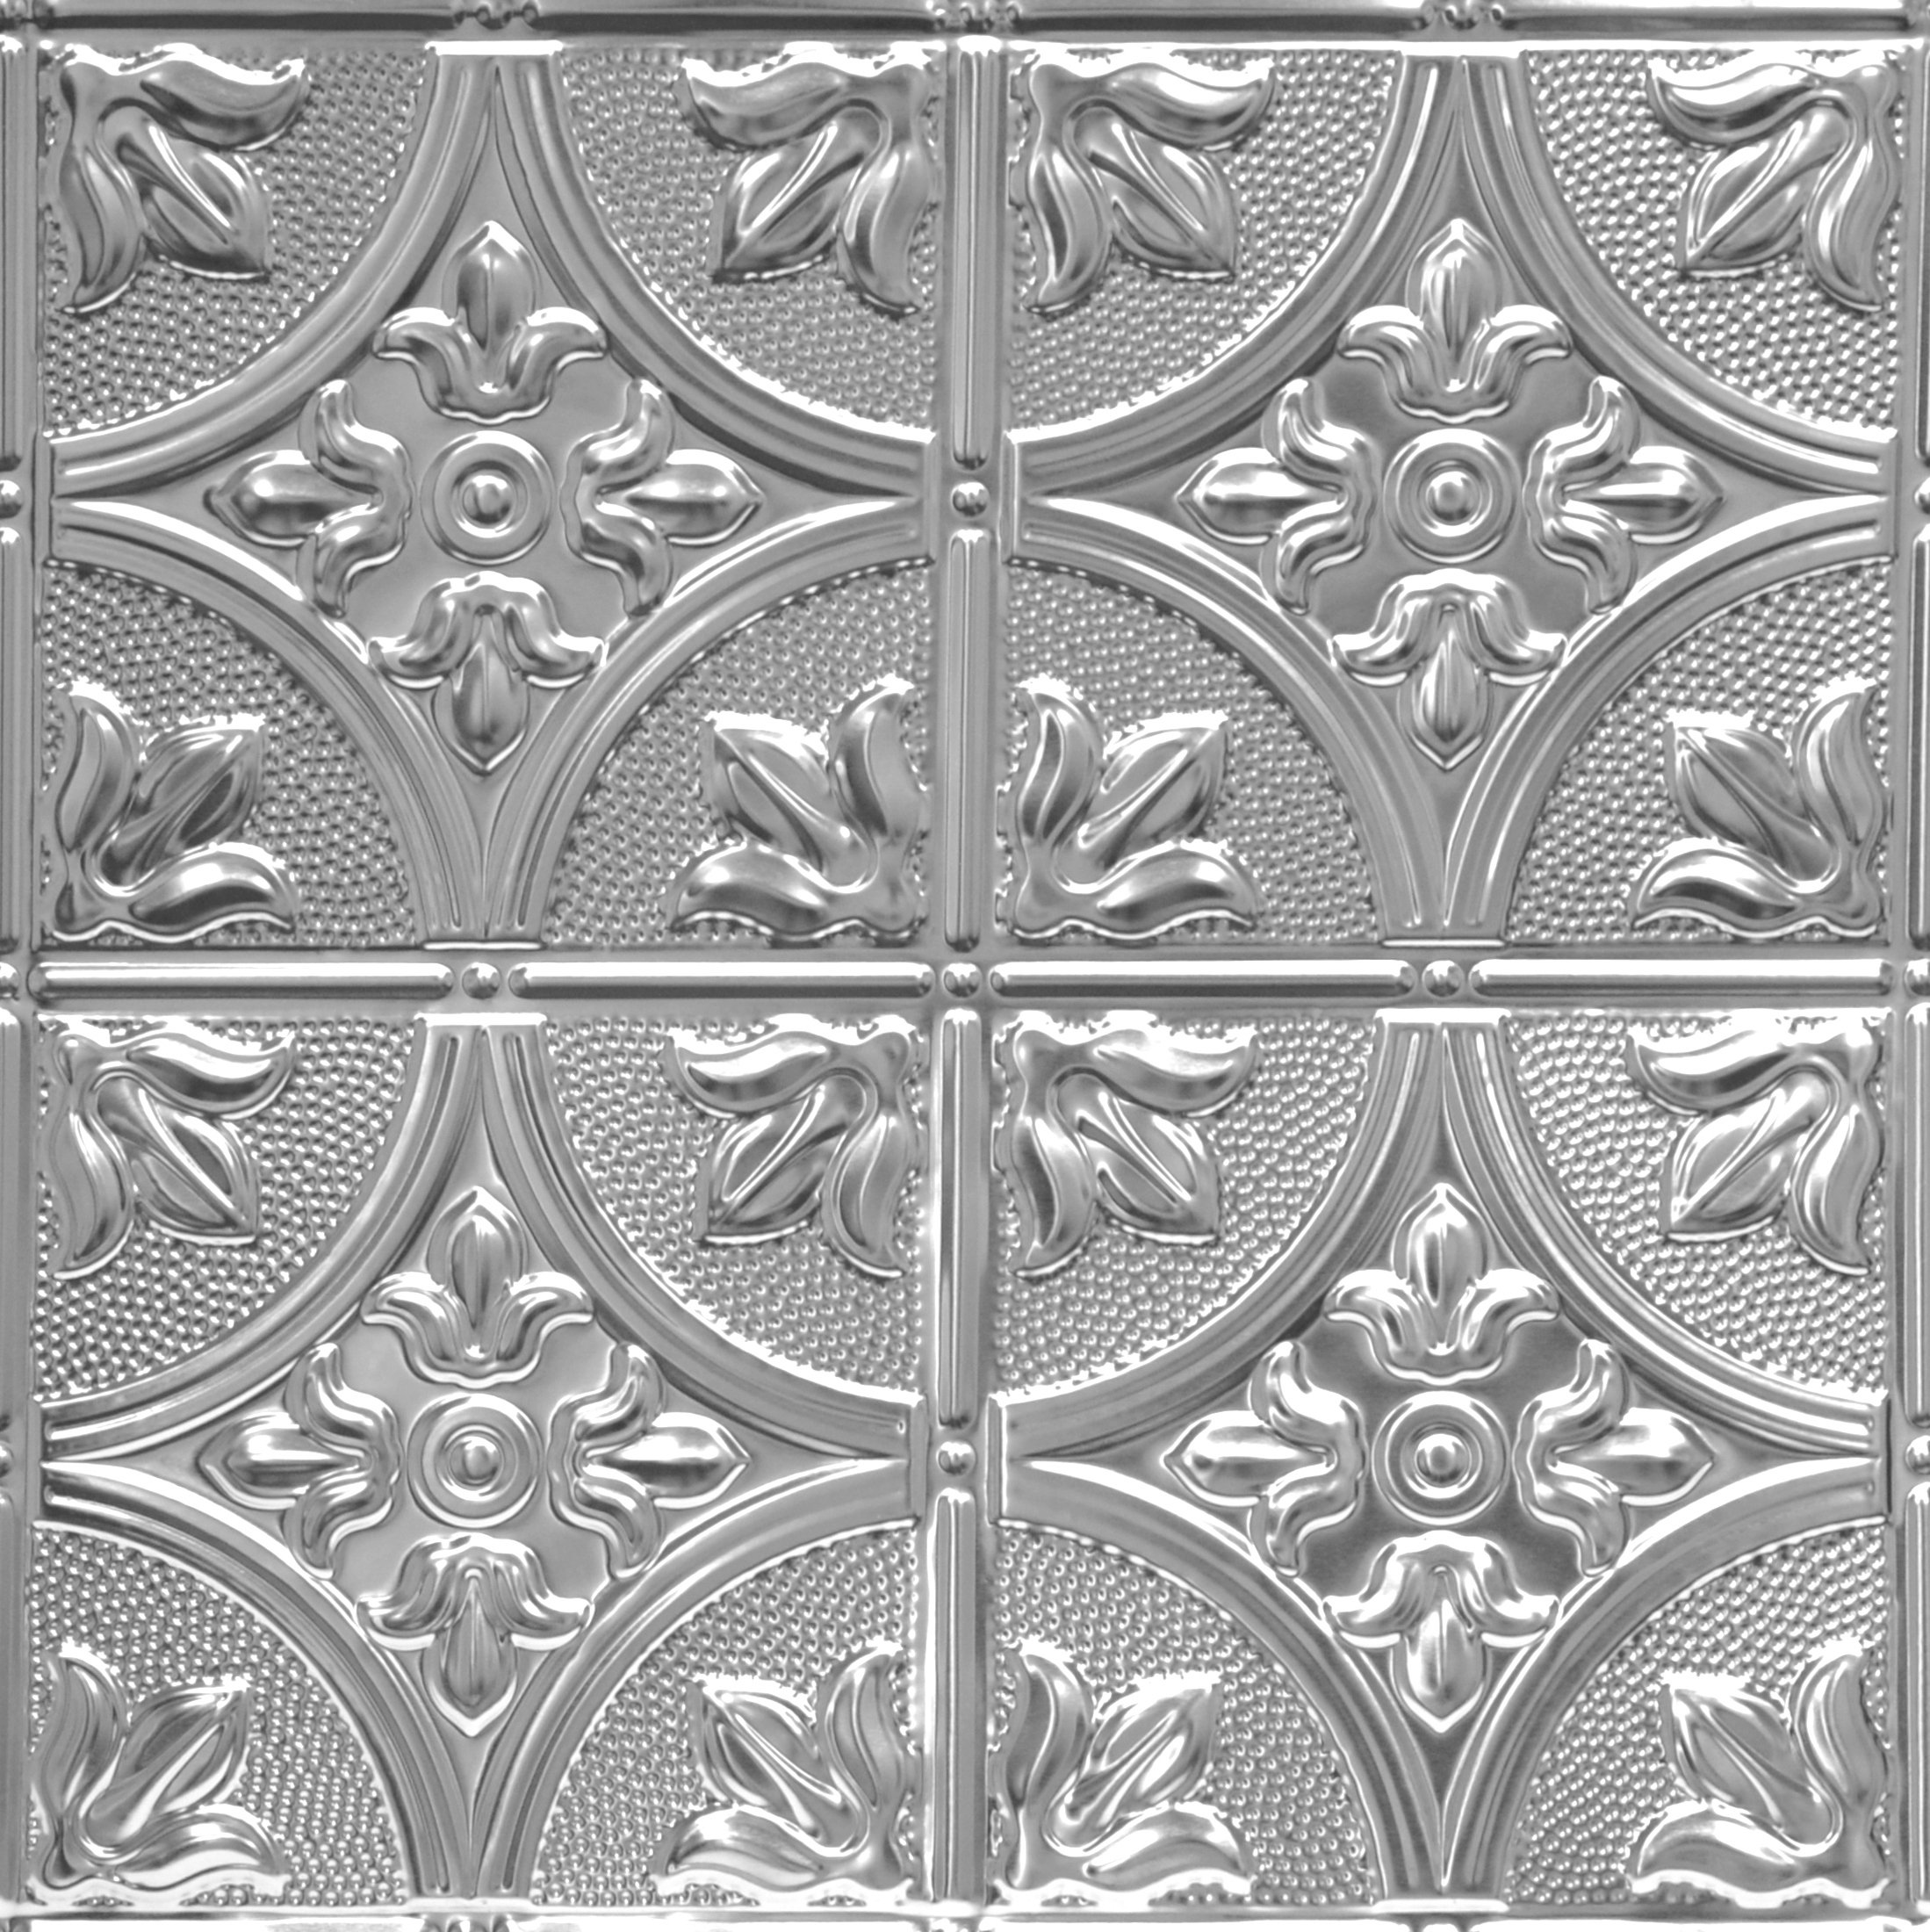 Shanko LS309DA Pattern 309 Authentic Pressed Metal Wall and Ceiling Tiles, 20 sq. ft., Lacquered Steel